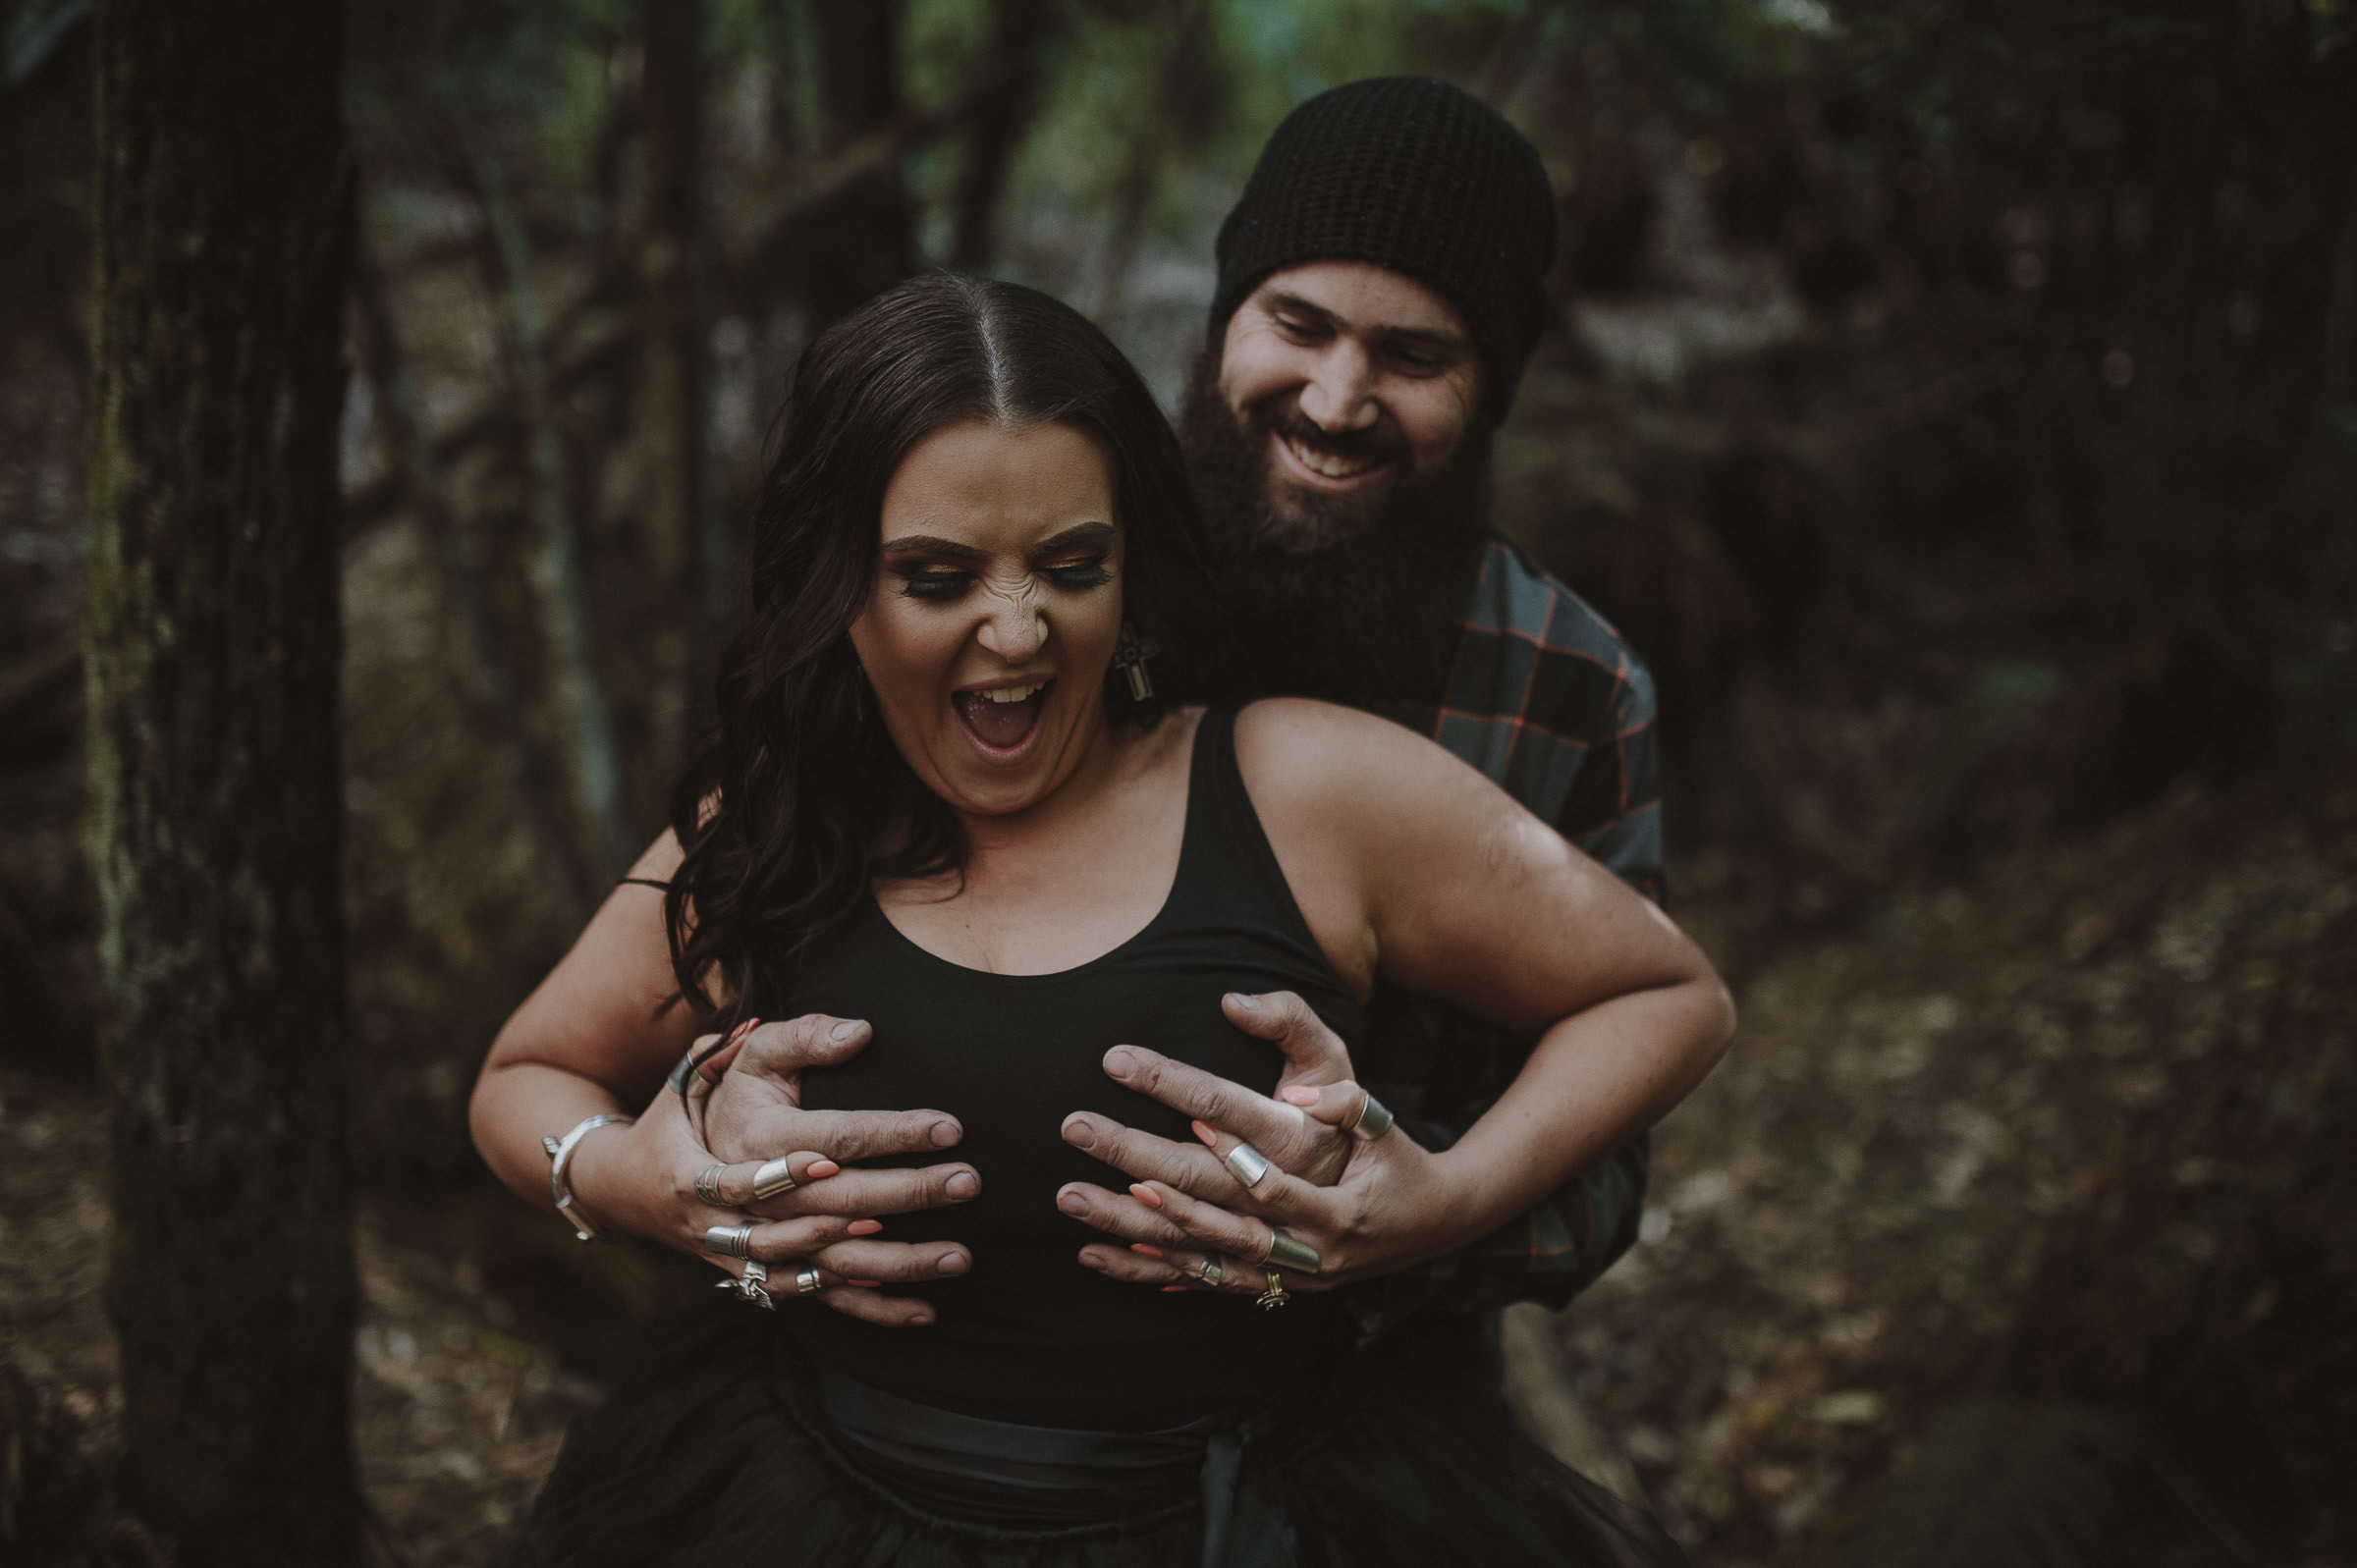 Madeline_Jamie_Watagens_Pine_Forest_Engagement_Shoot_Blog-6.jpg